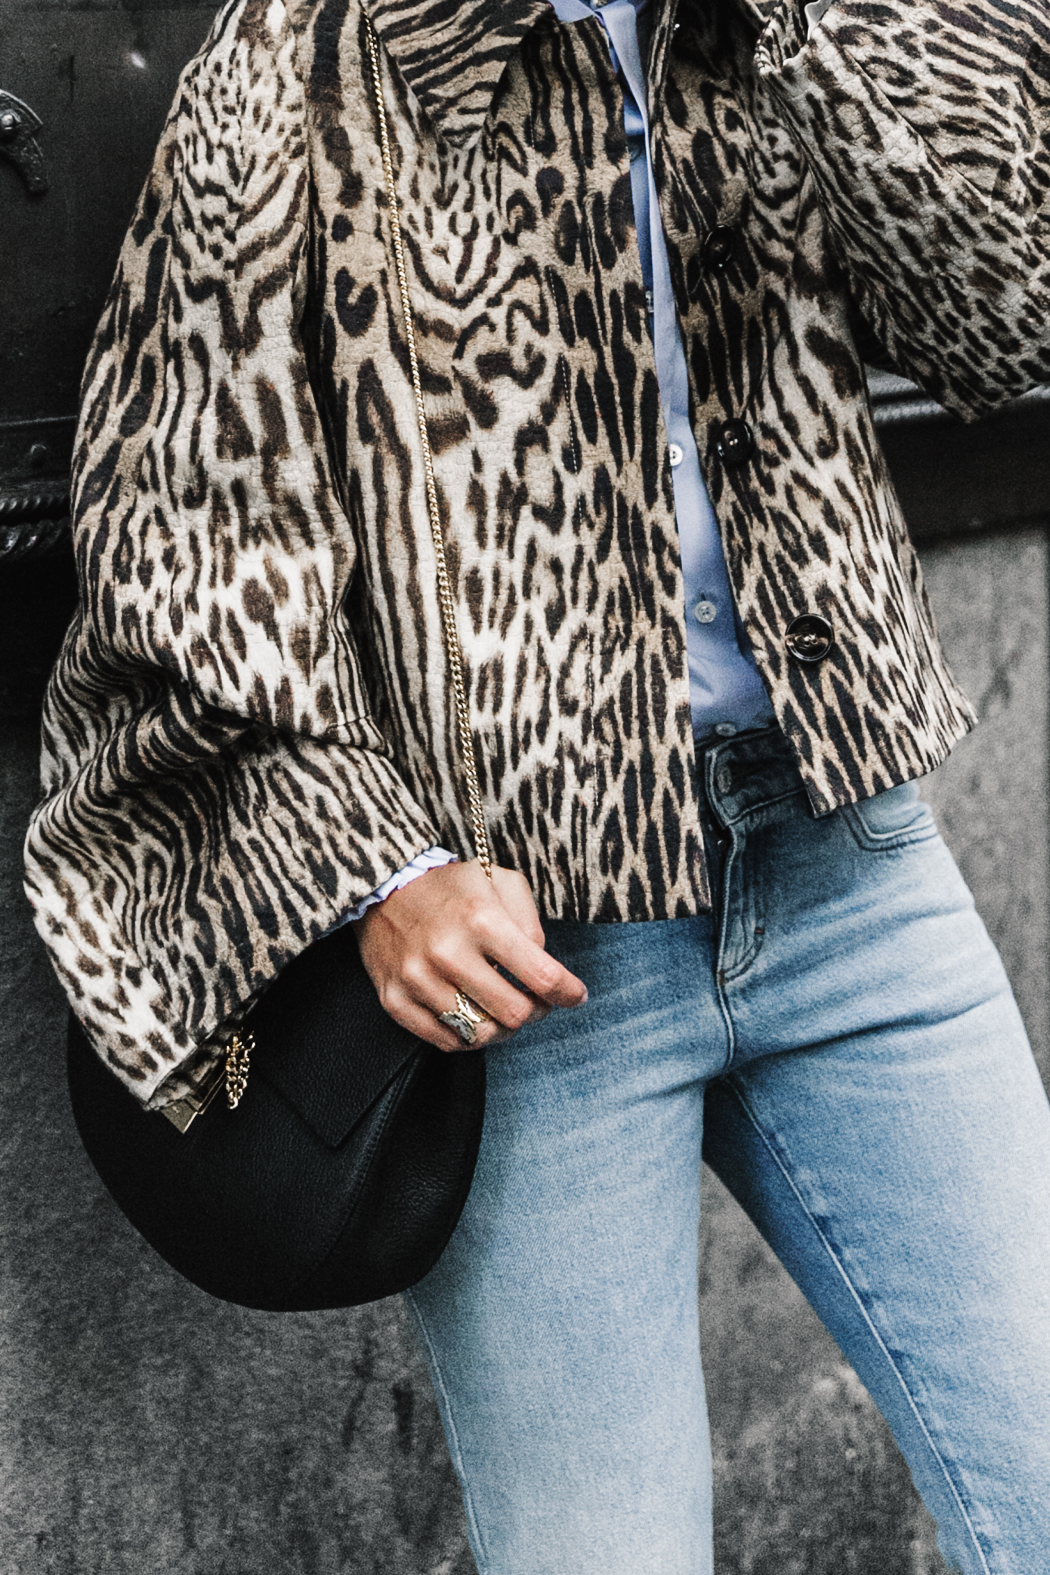 Firenze4Ever-Luisa_VIa_Roma-Chloe_Leopard_Jacket-Light_Blue_Blouse-Gucci_Jeans-_Look-Drew_Bag-Outfit-Florence-Street_Style-7